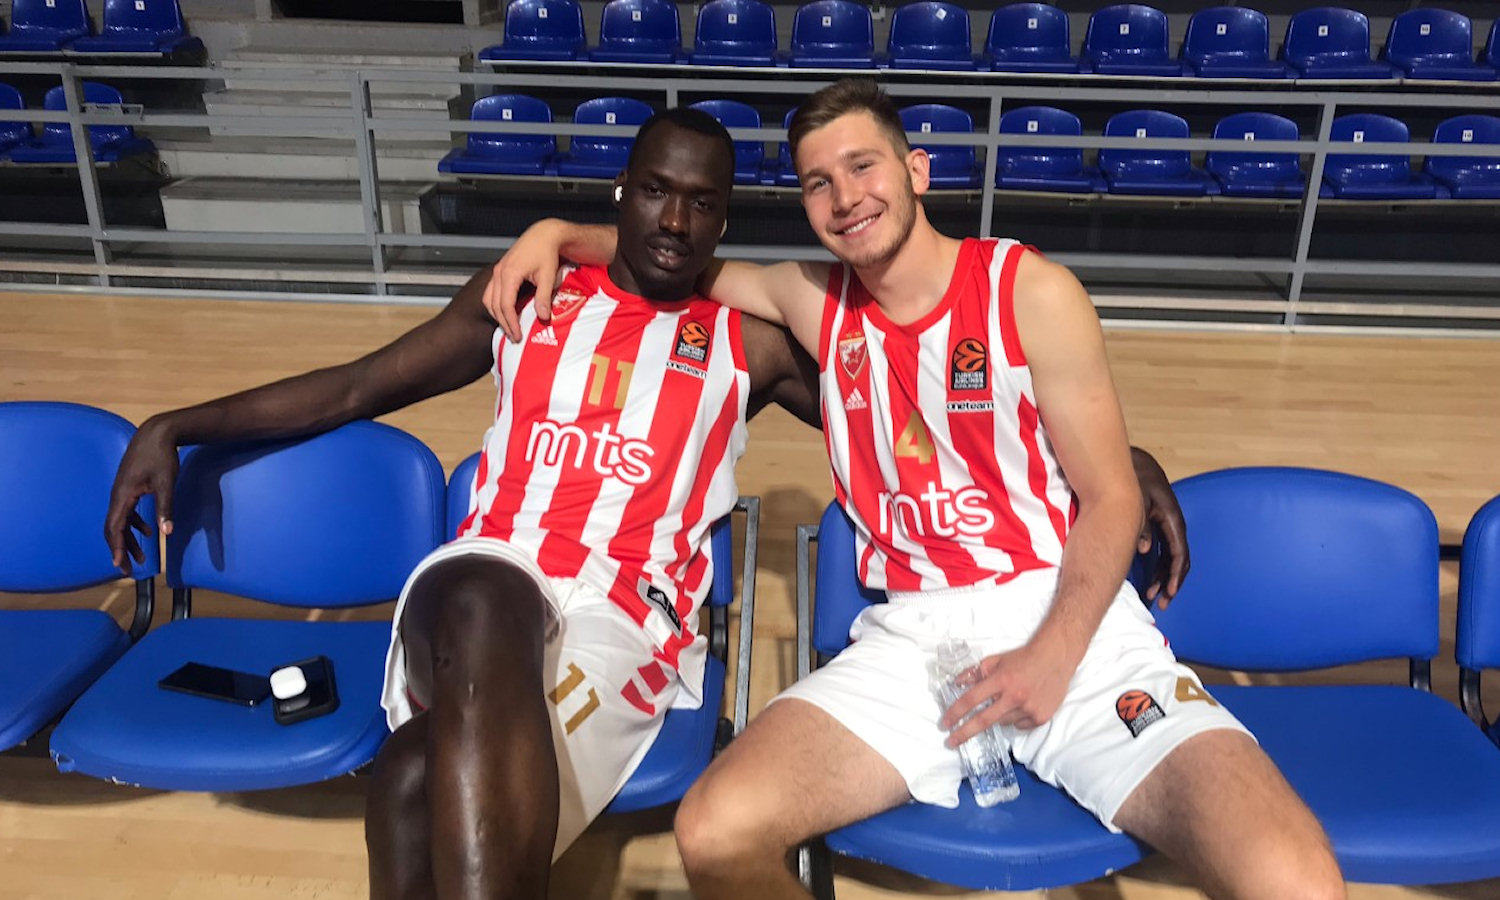 Duop Reath and Aleksa Uskokovic - Crvena Zvezda mts Belgrade Media Day 2020 (photo Zvezda) - EB20